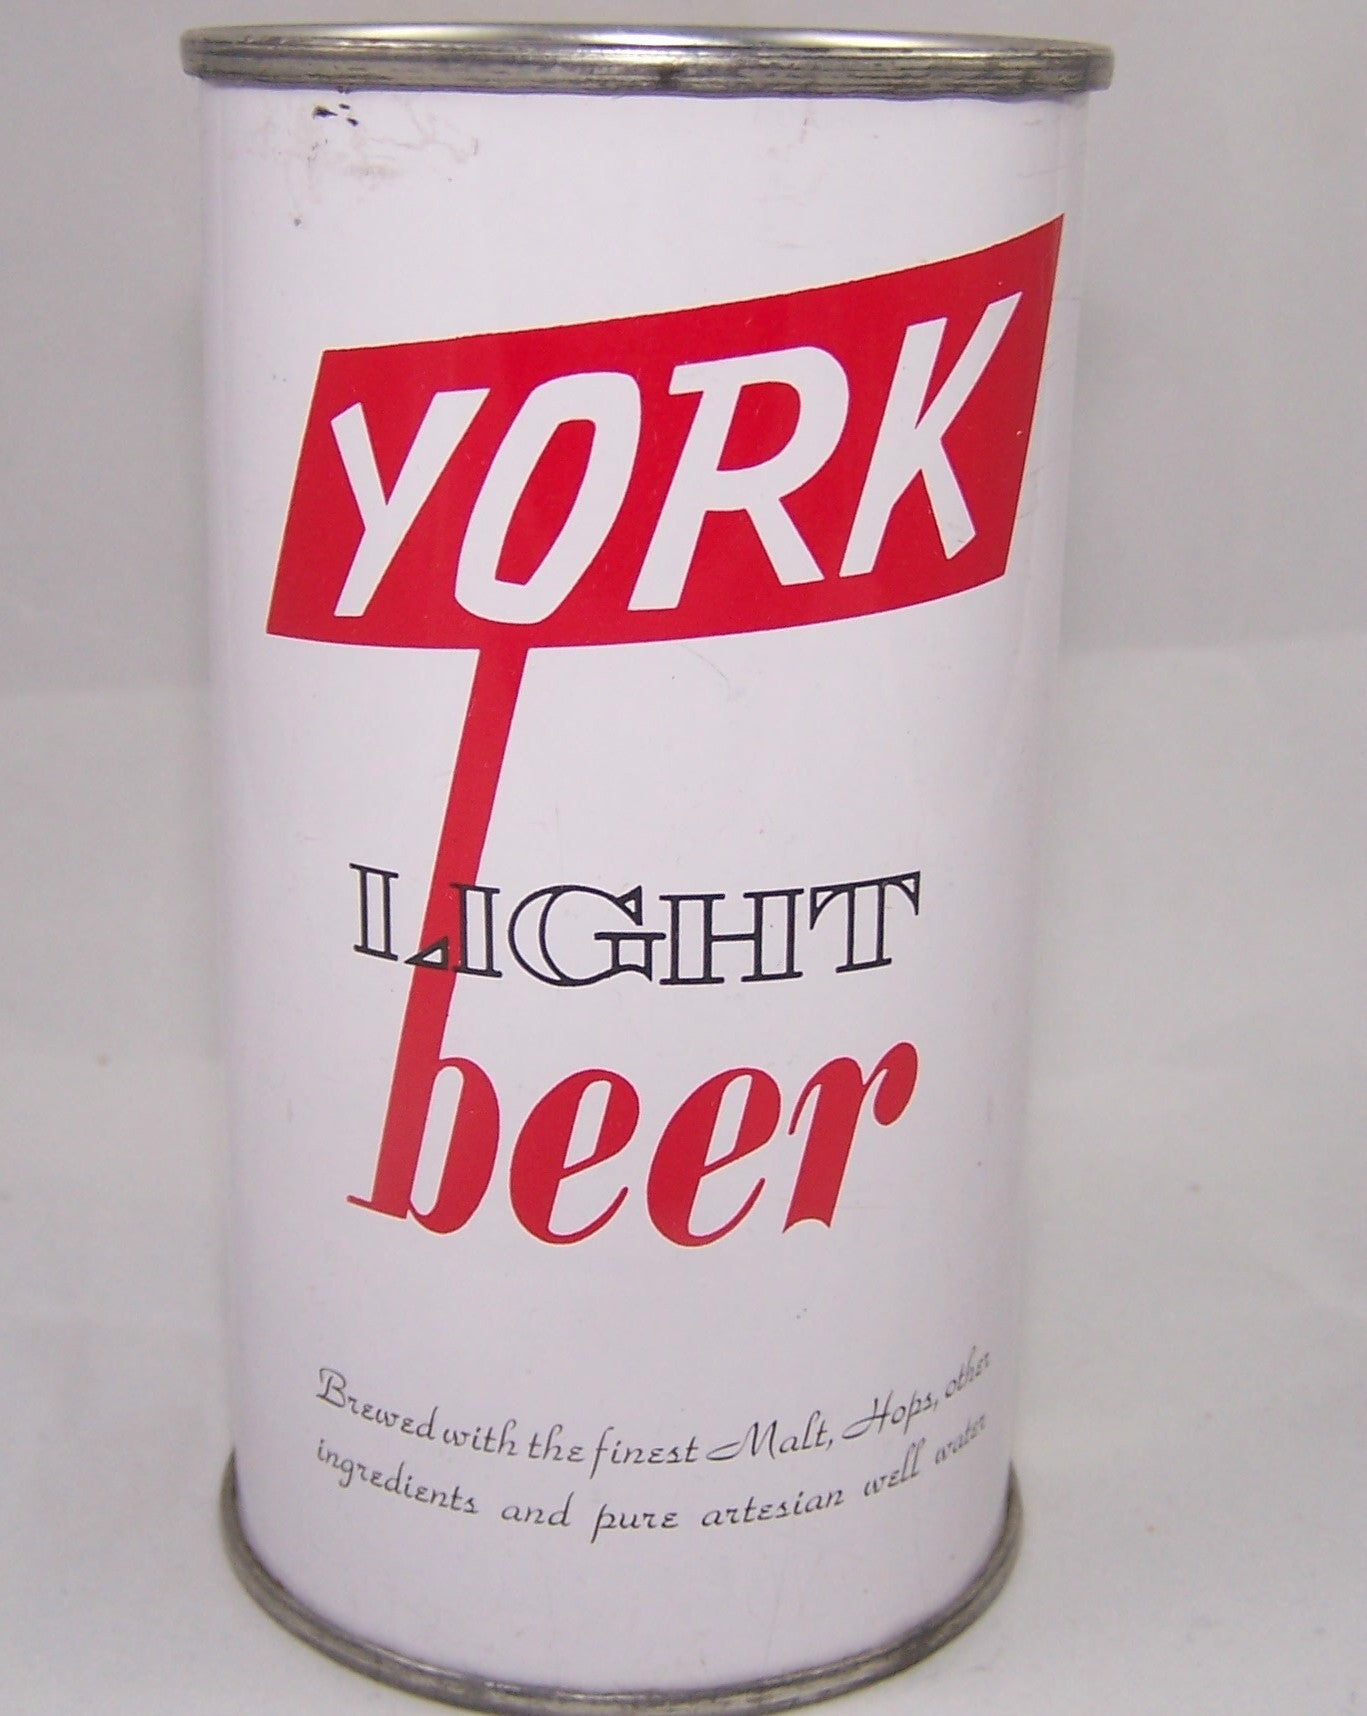 York Light Beer, USBC 147-2 Grade 1/1+ Rolled